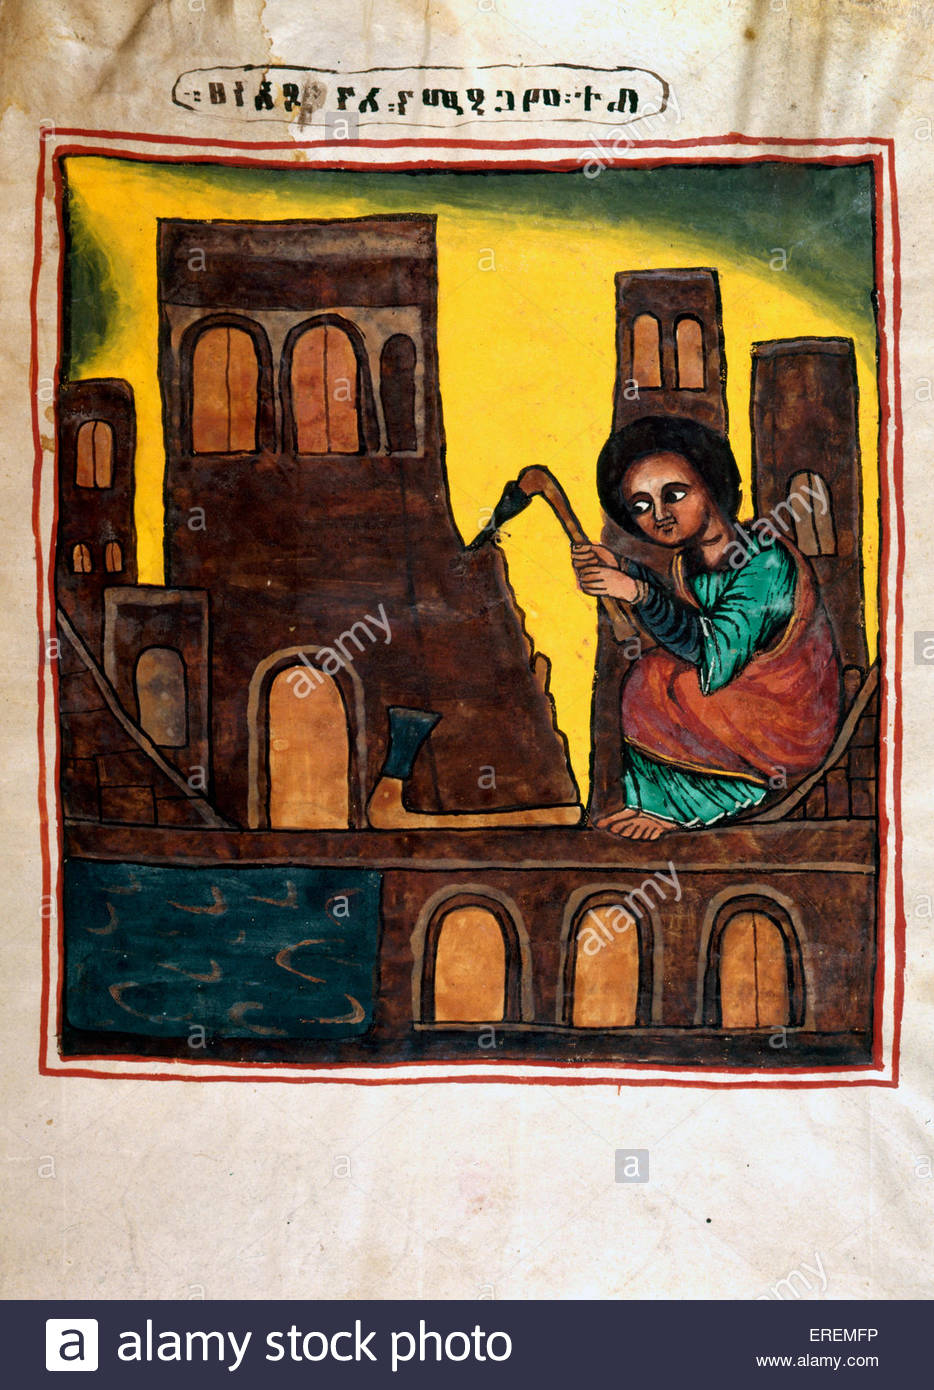 Building the Church of Saint Mary. Ethiopian 19th century  illuminated manuscript. Possibly from the Quesquam (Or - Stock Image